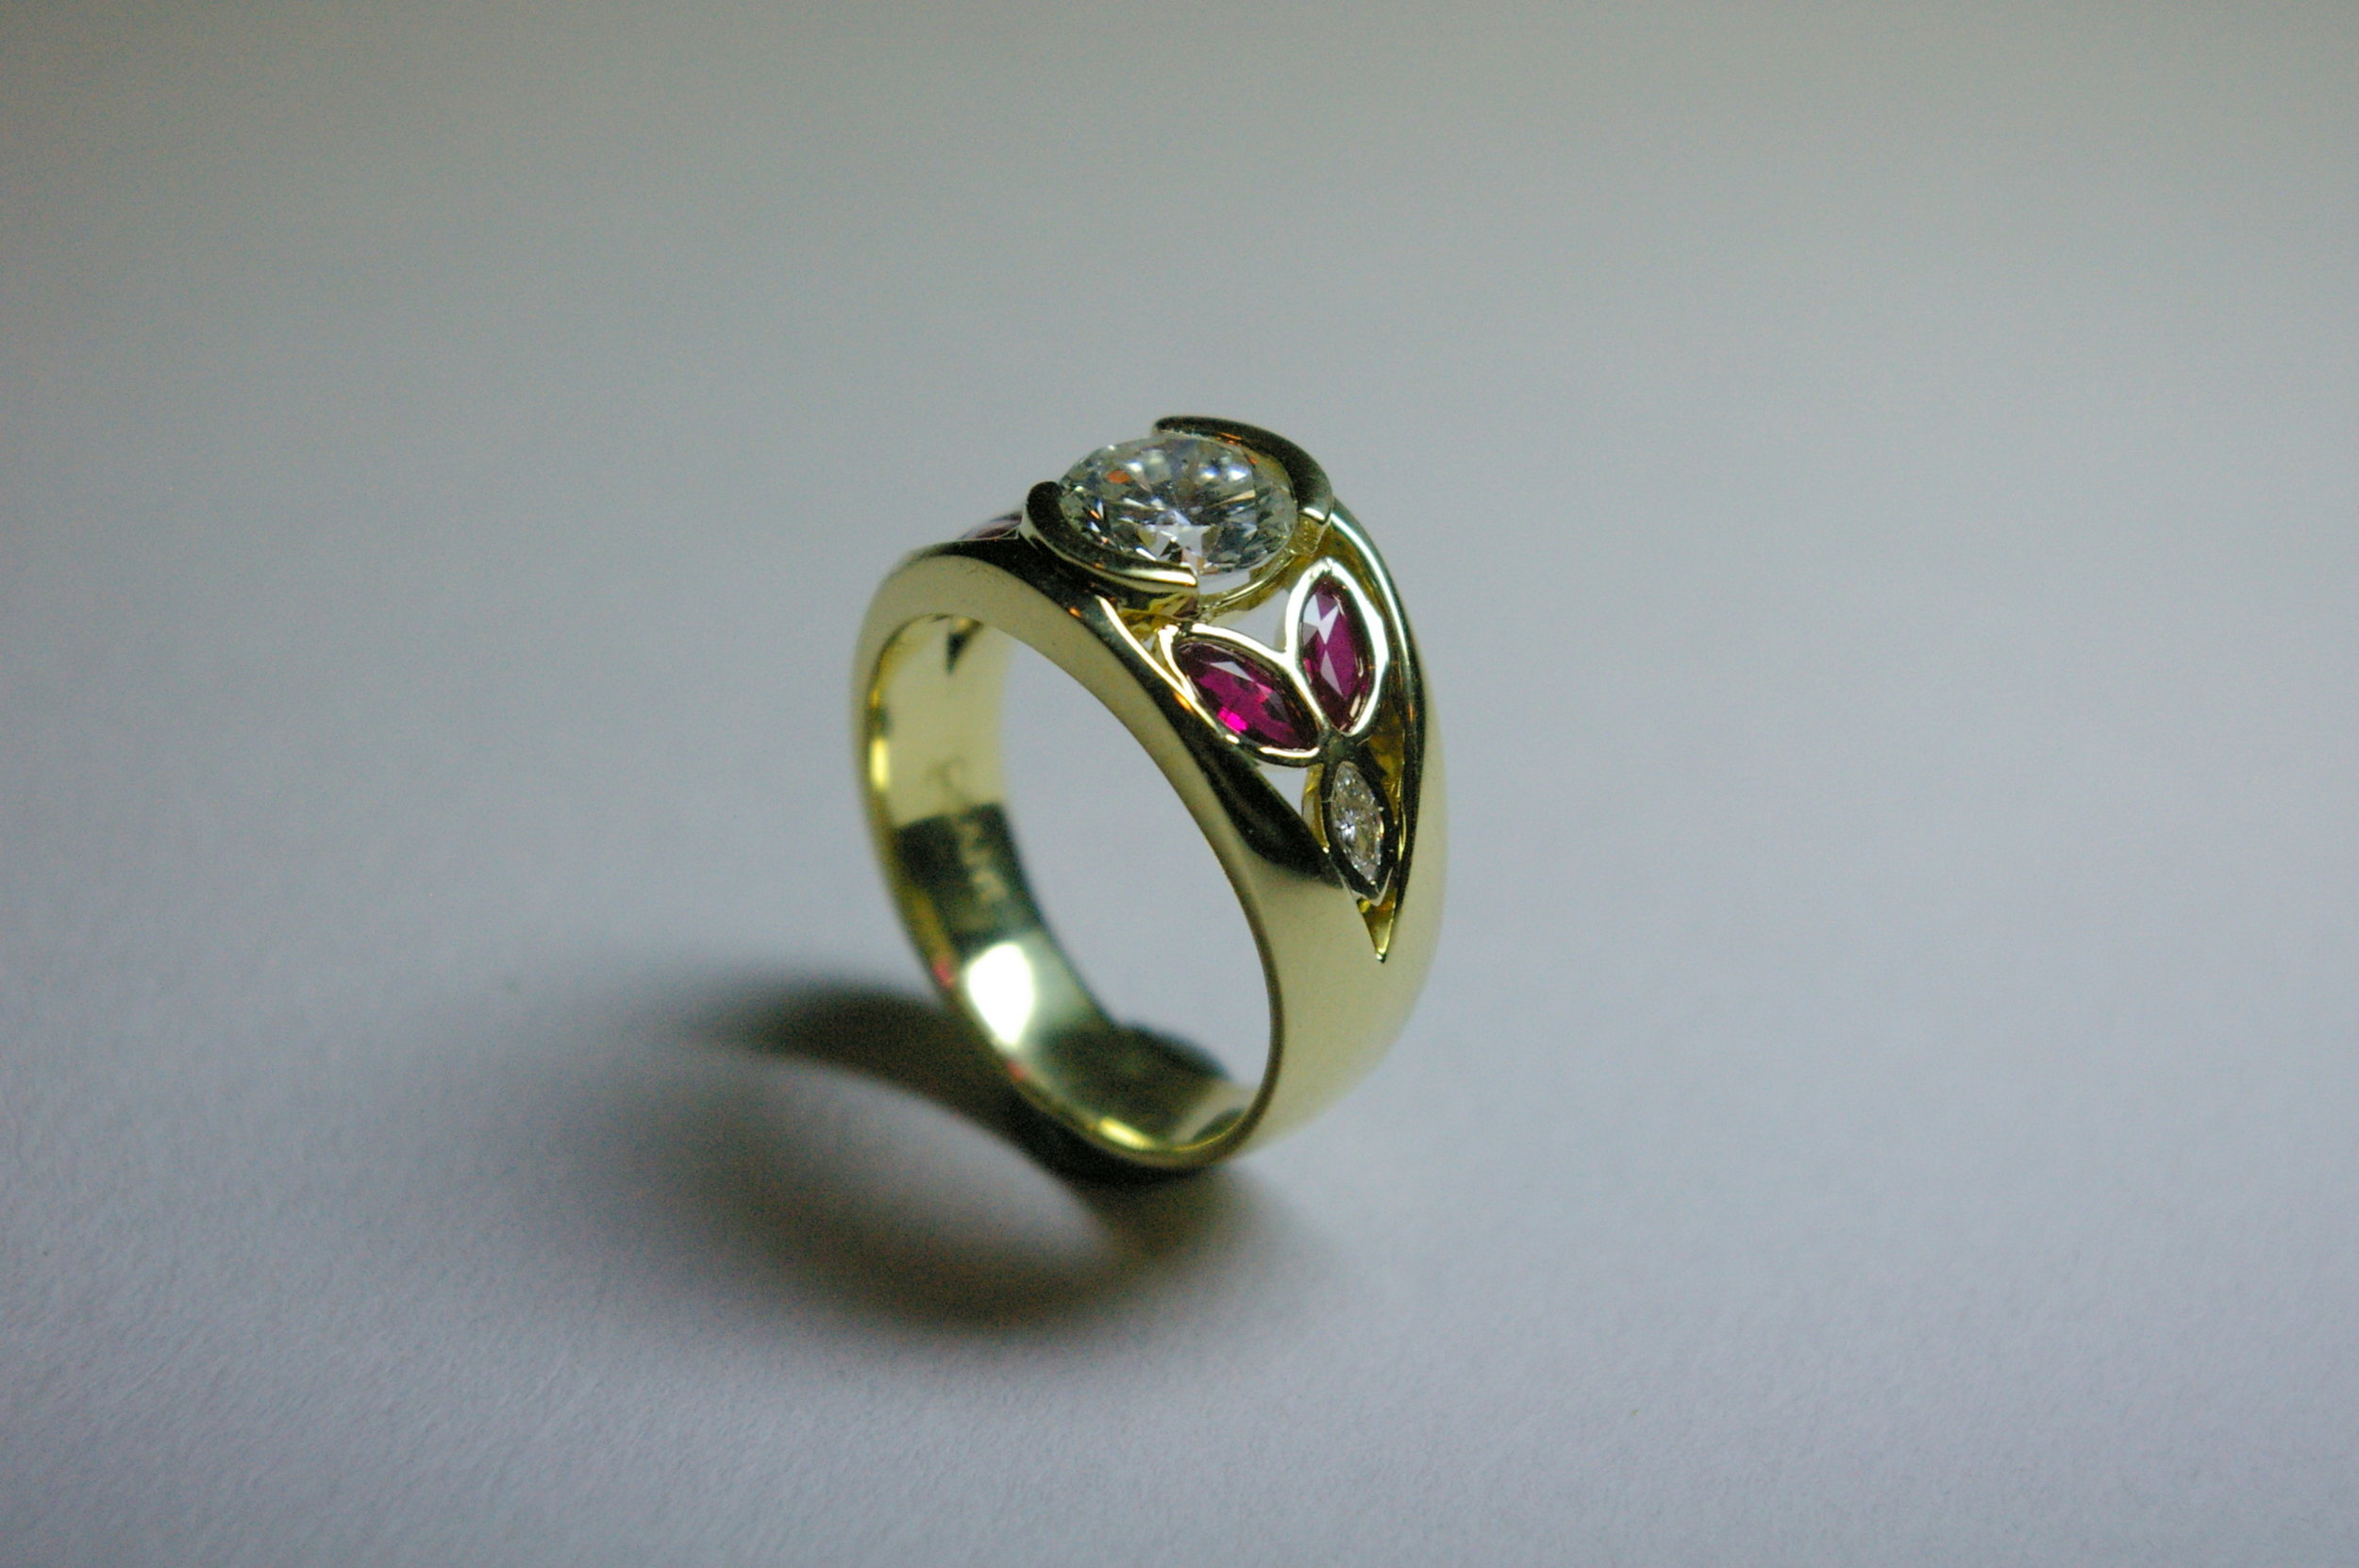 18 Karat Yellow Gold with Marquise cut Diamonds and Rubies